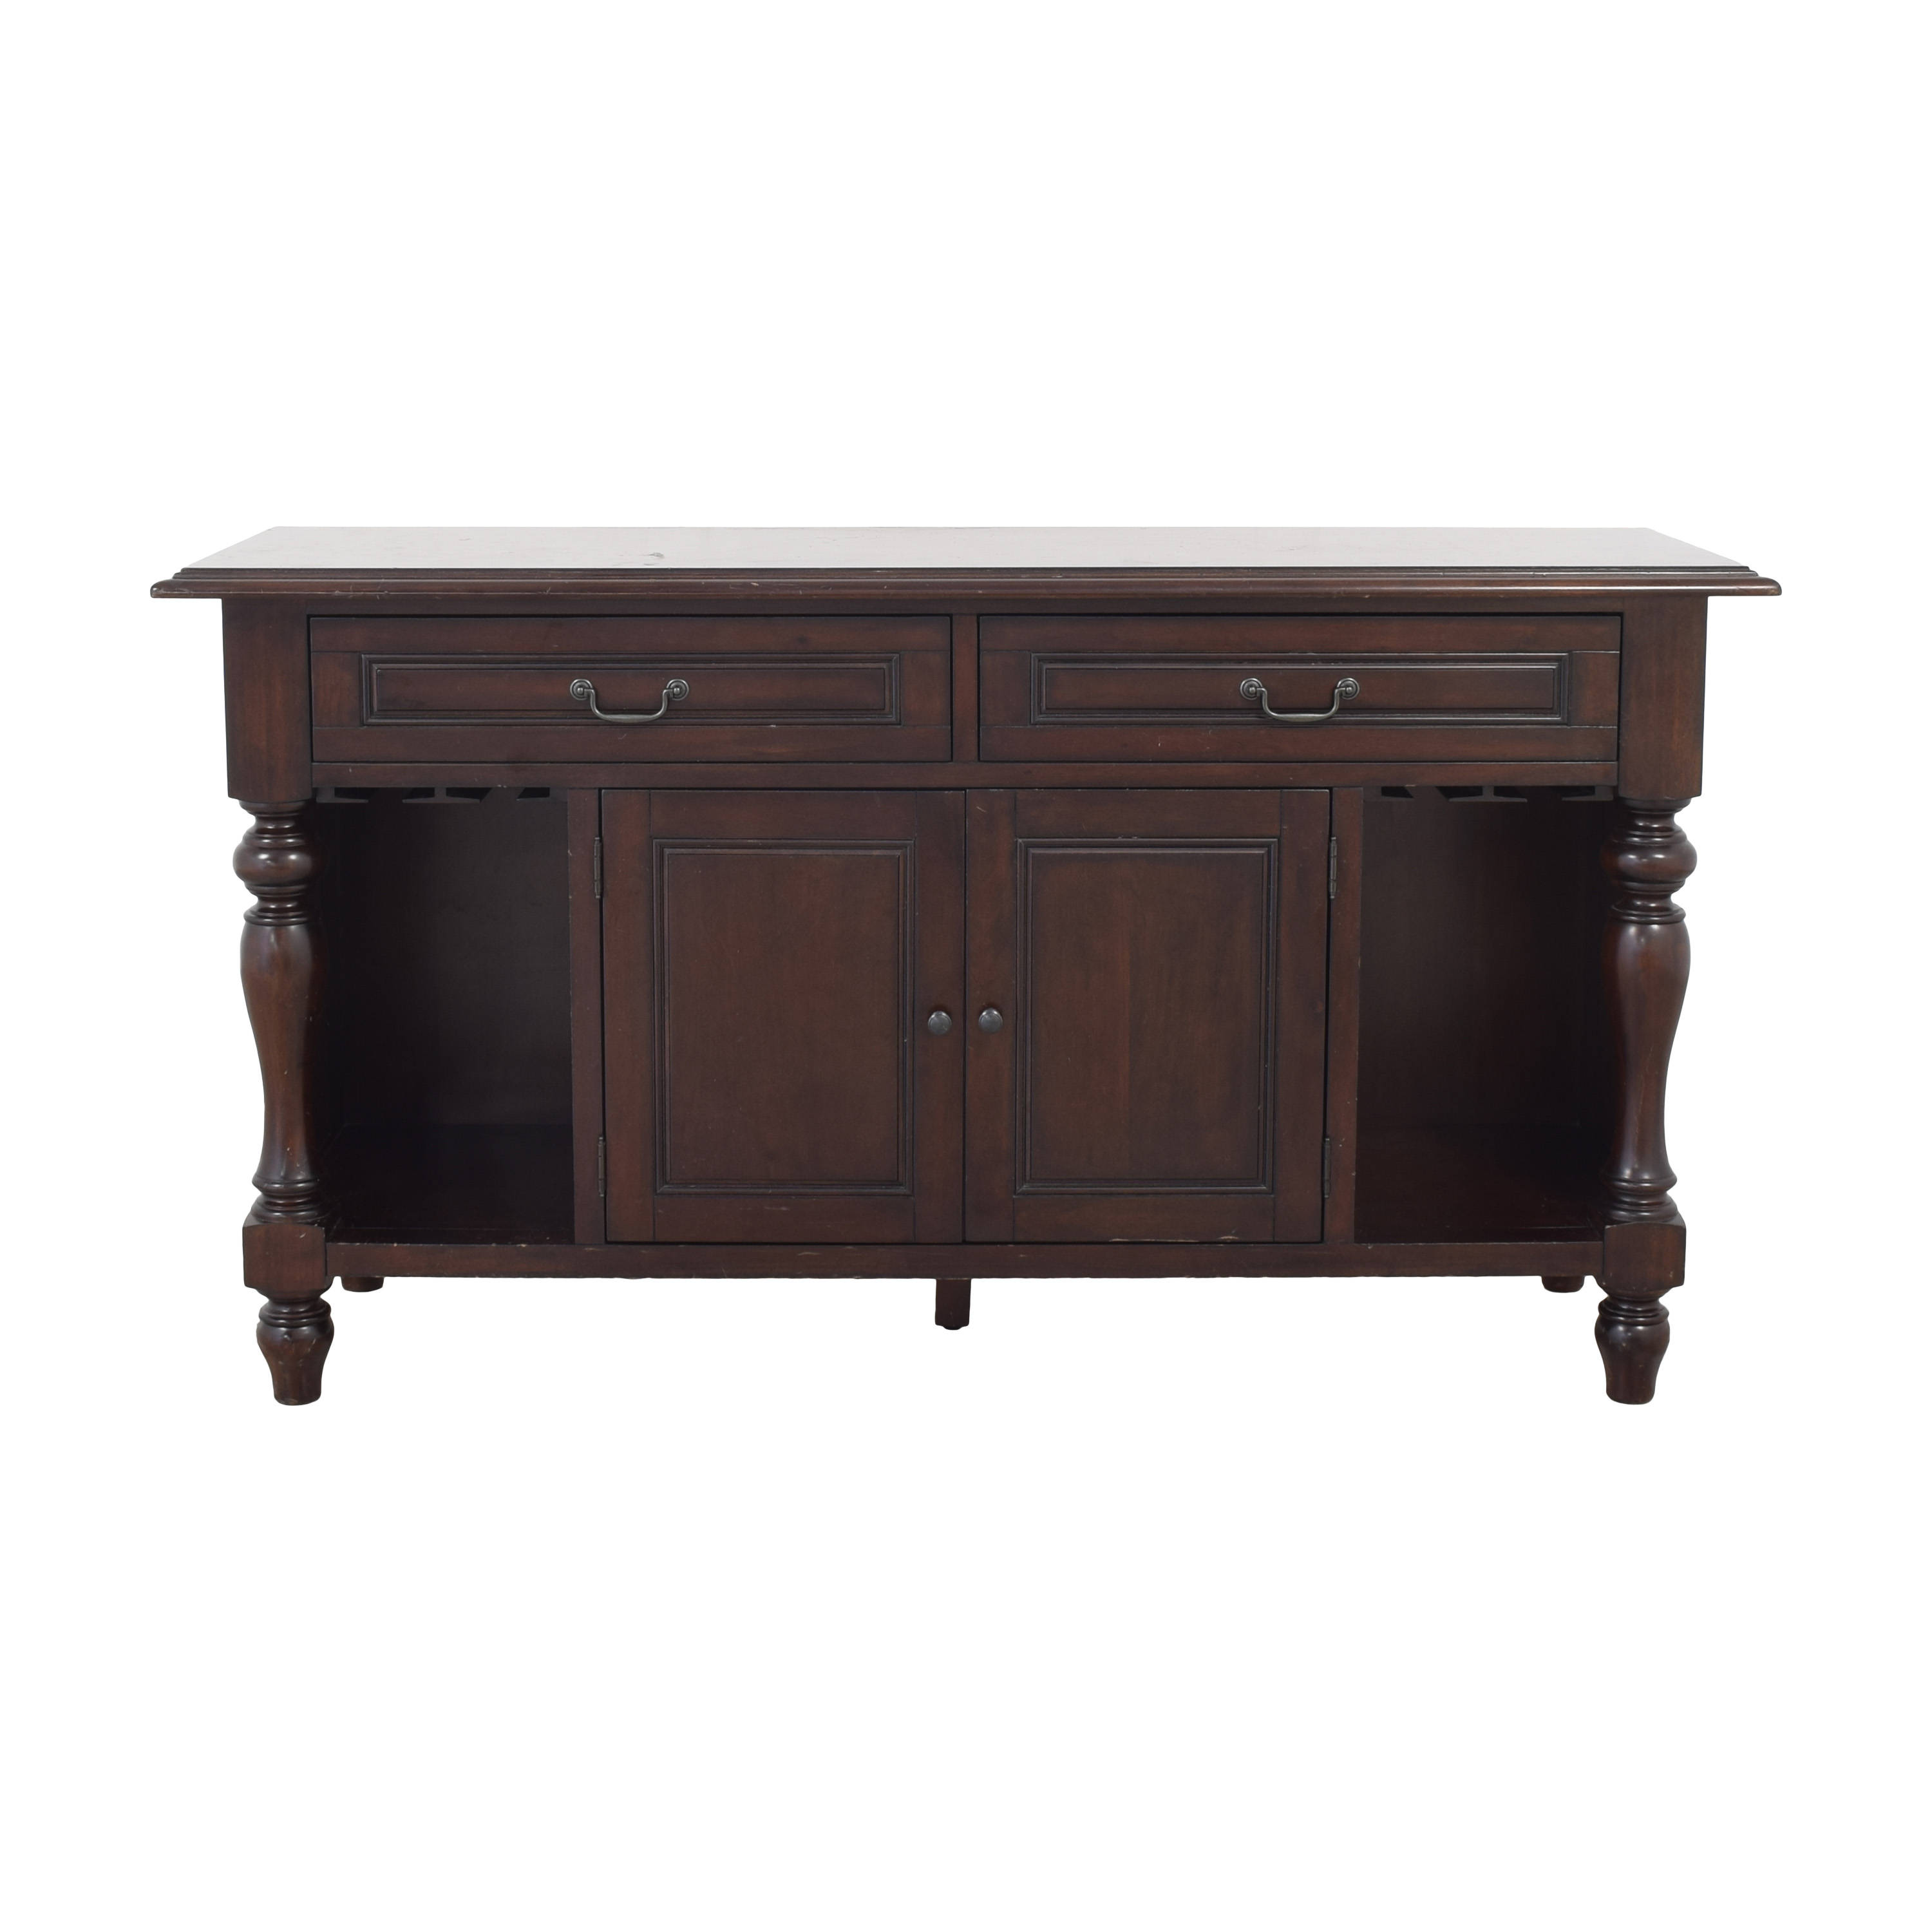 Pottery Barn Pottery Barn Sideboard Buffet Cabinet for sale